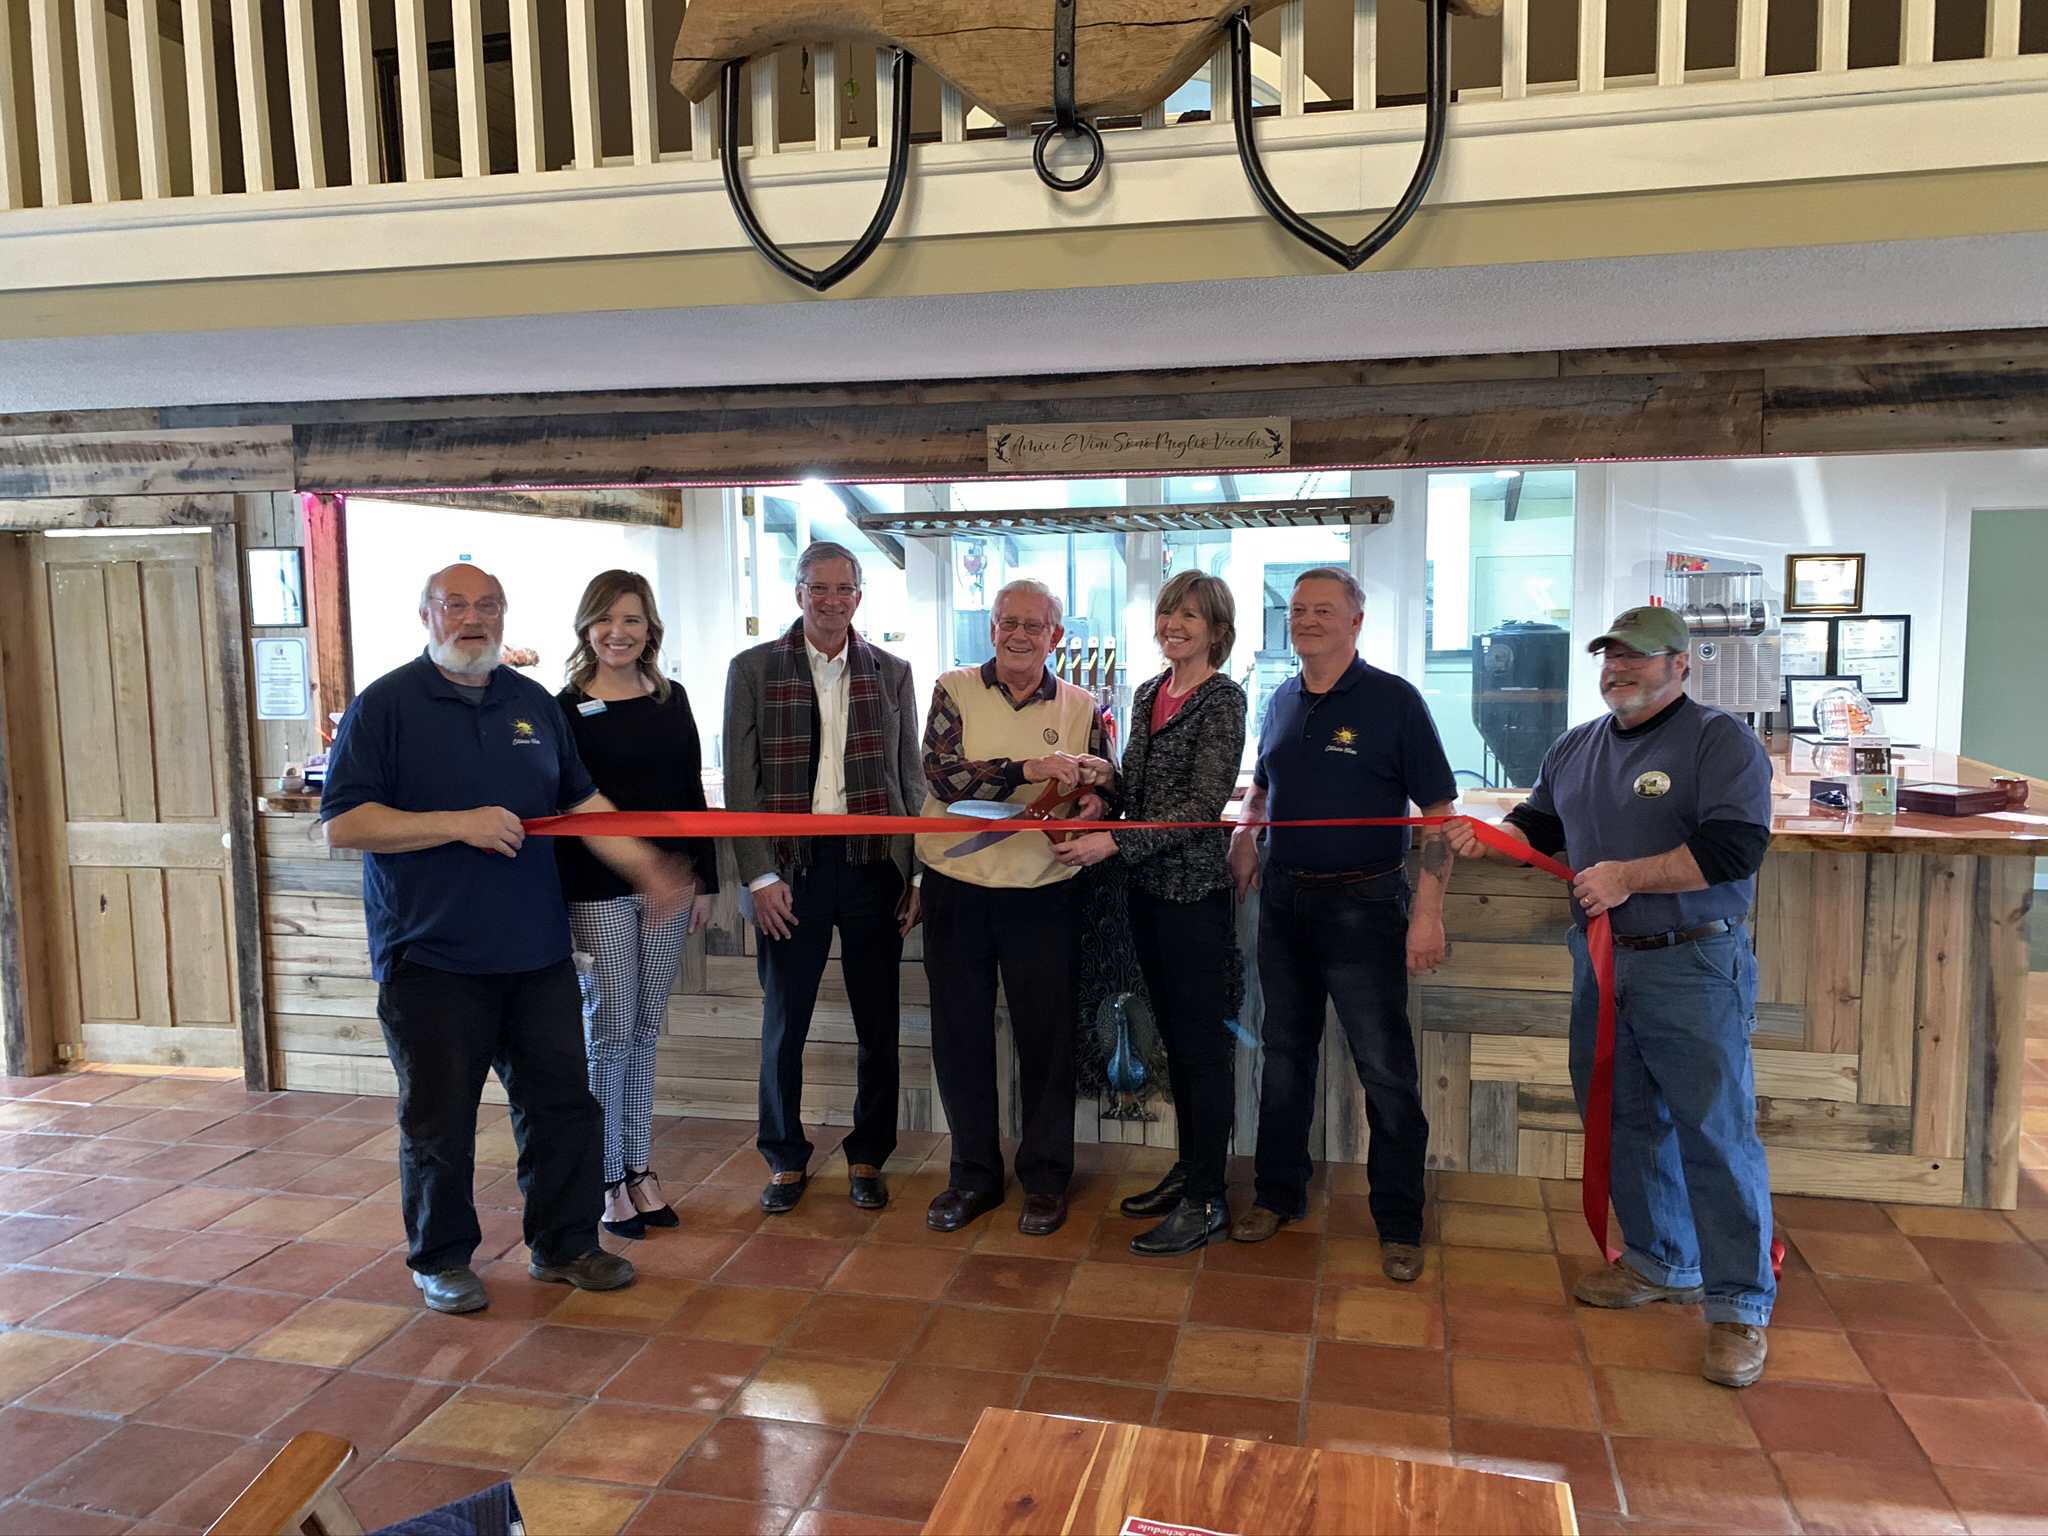 Catawba Farms Brewery celebrated their opening during a recent ribbon cutting ceremony. The brewery is located at 1670 Southwest Blvd. (U.S. 321 Business), Newton